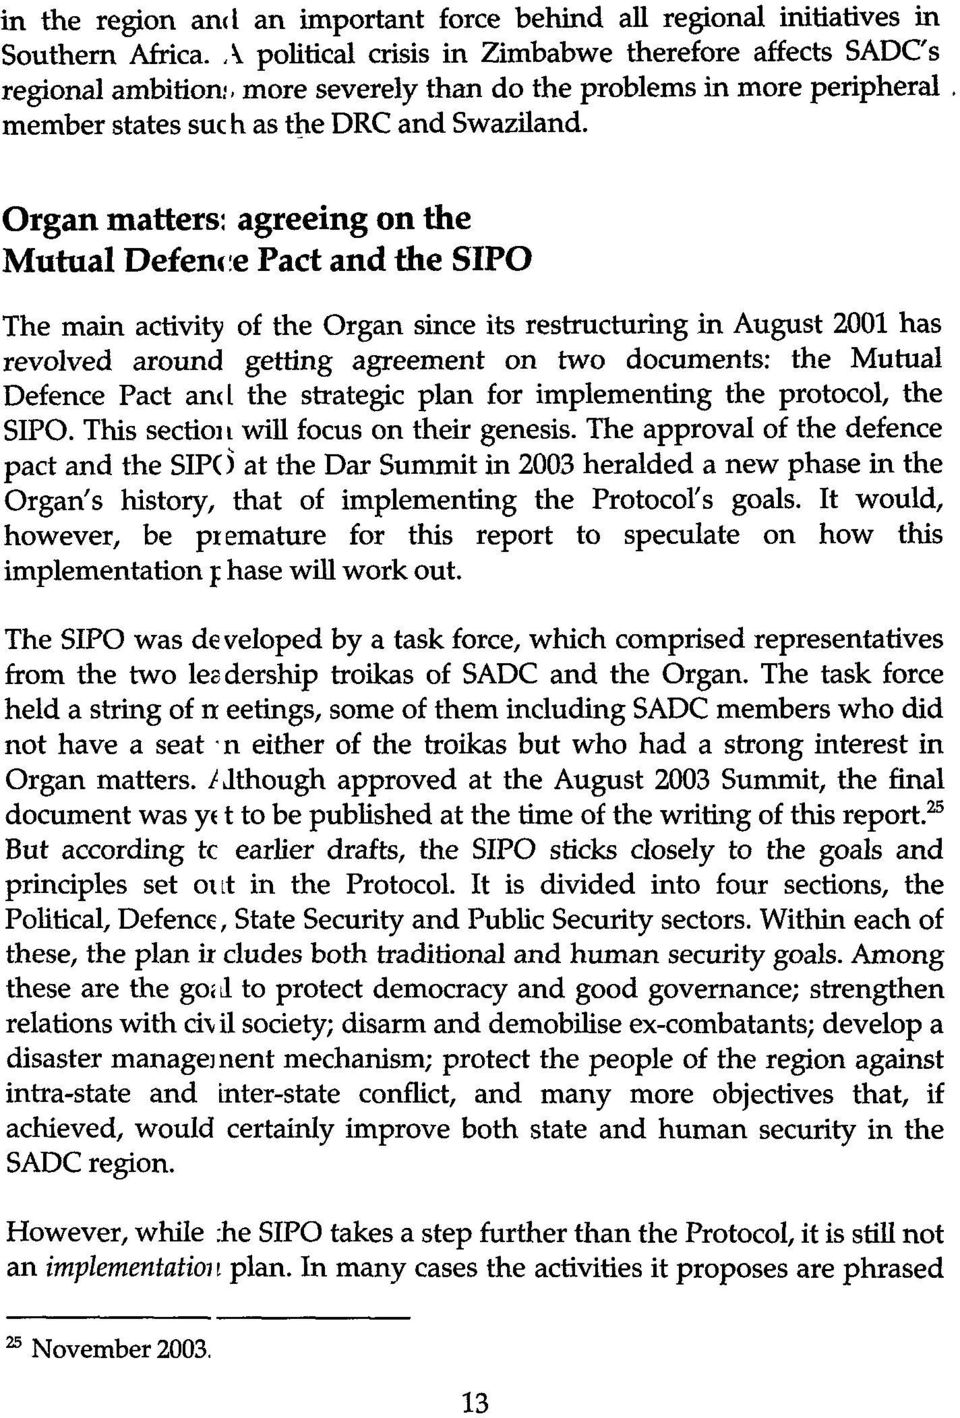 Organ matters: agreeing on the Mutual Defence Pact and the SIPO The main activity of the Organ since its restructuring in August 2001 has revolved around getting agreement on two documents: the